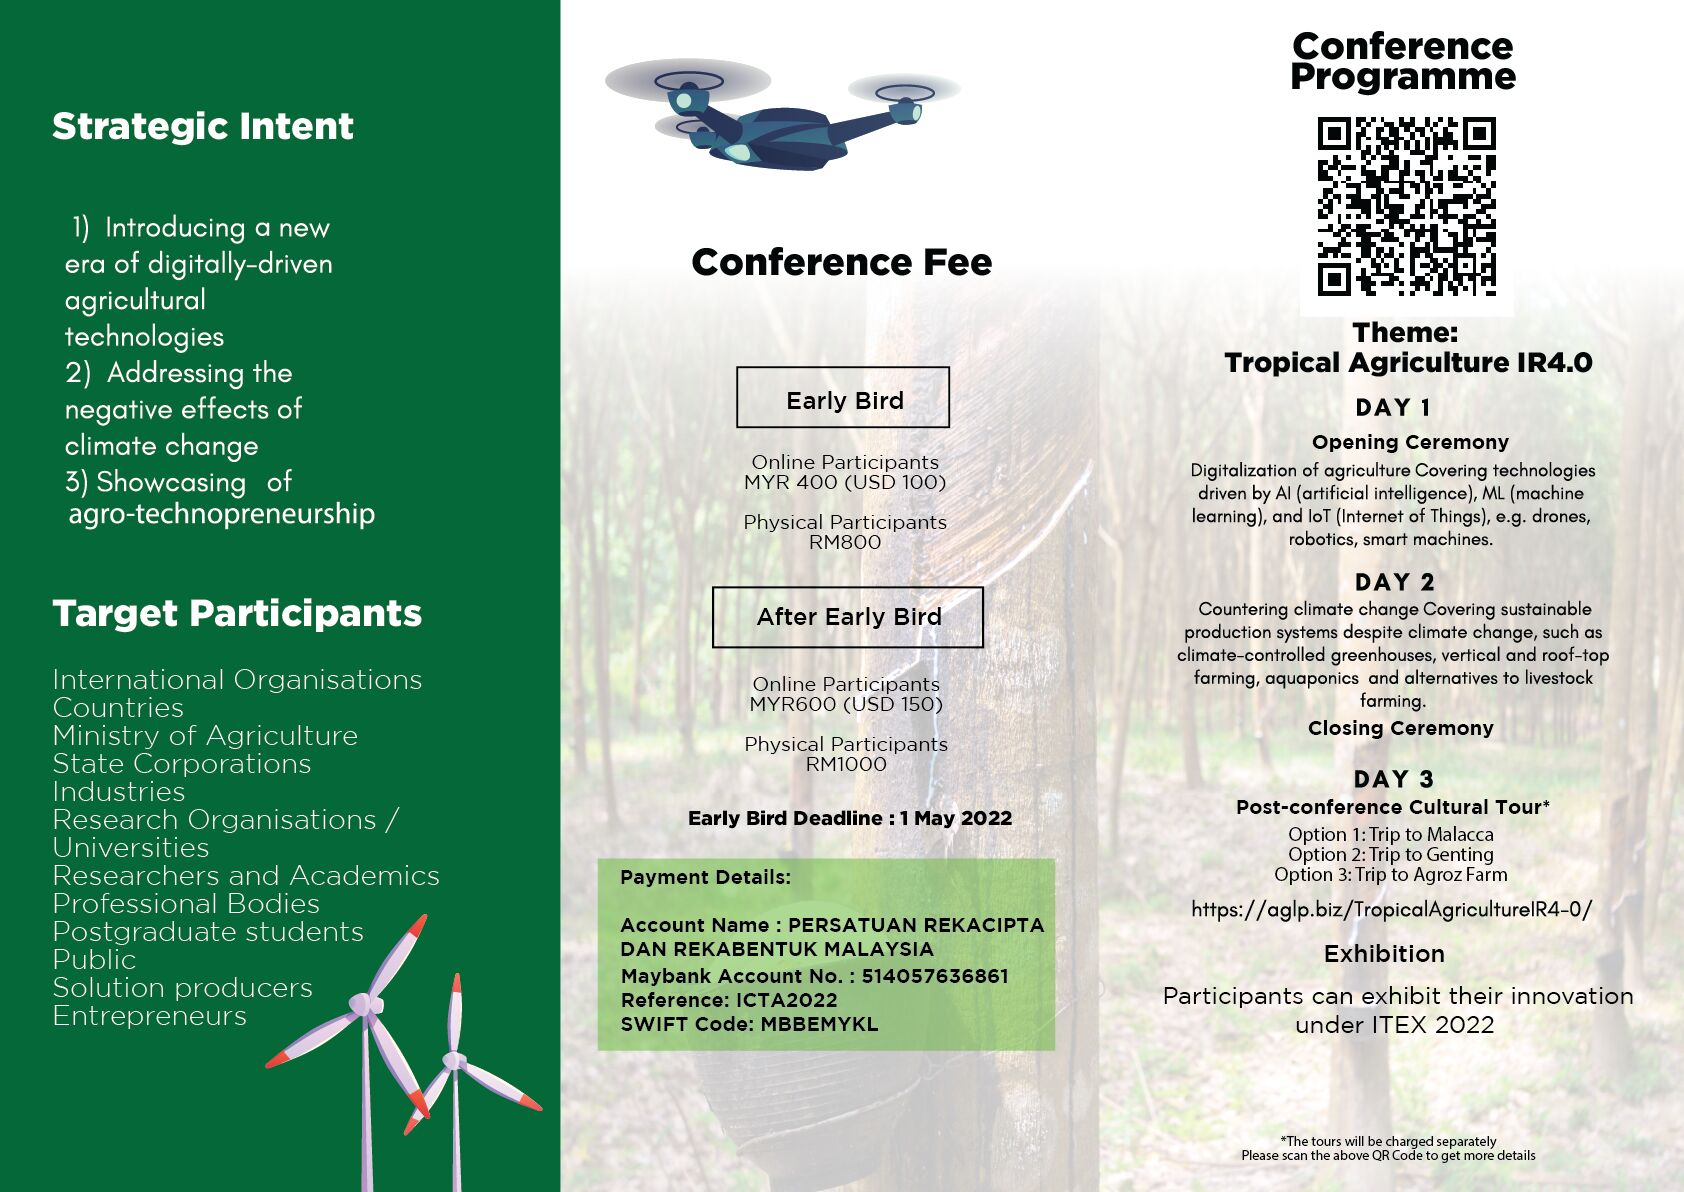 ICTA2022 International Conference on Tropical Agriculture I.R.4.0